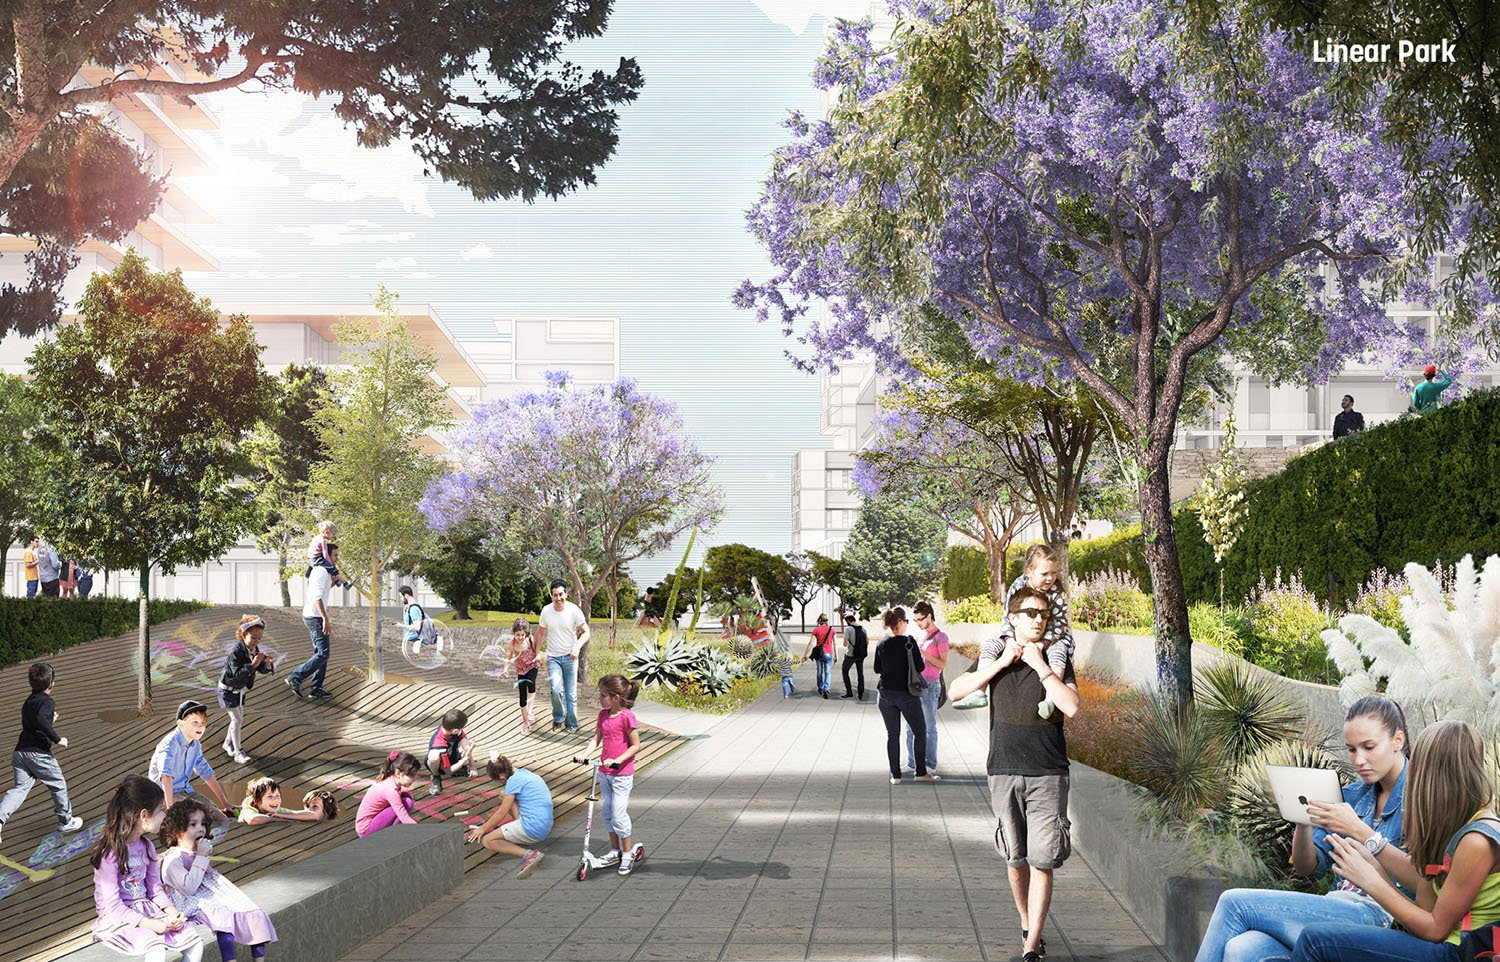 Linear park draws people to the network of public spaces }